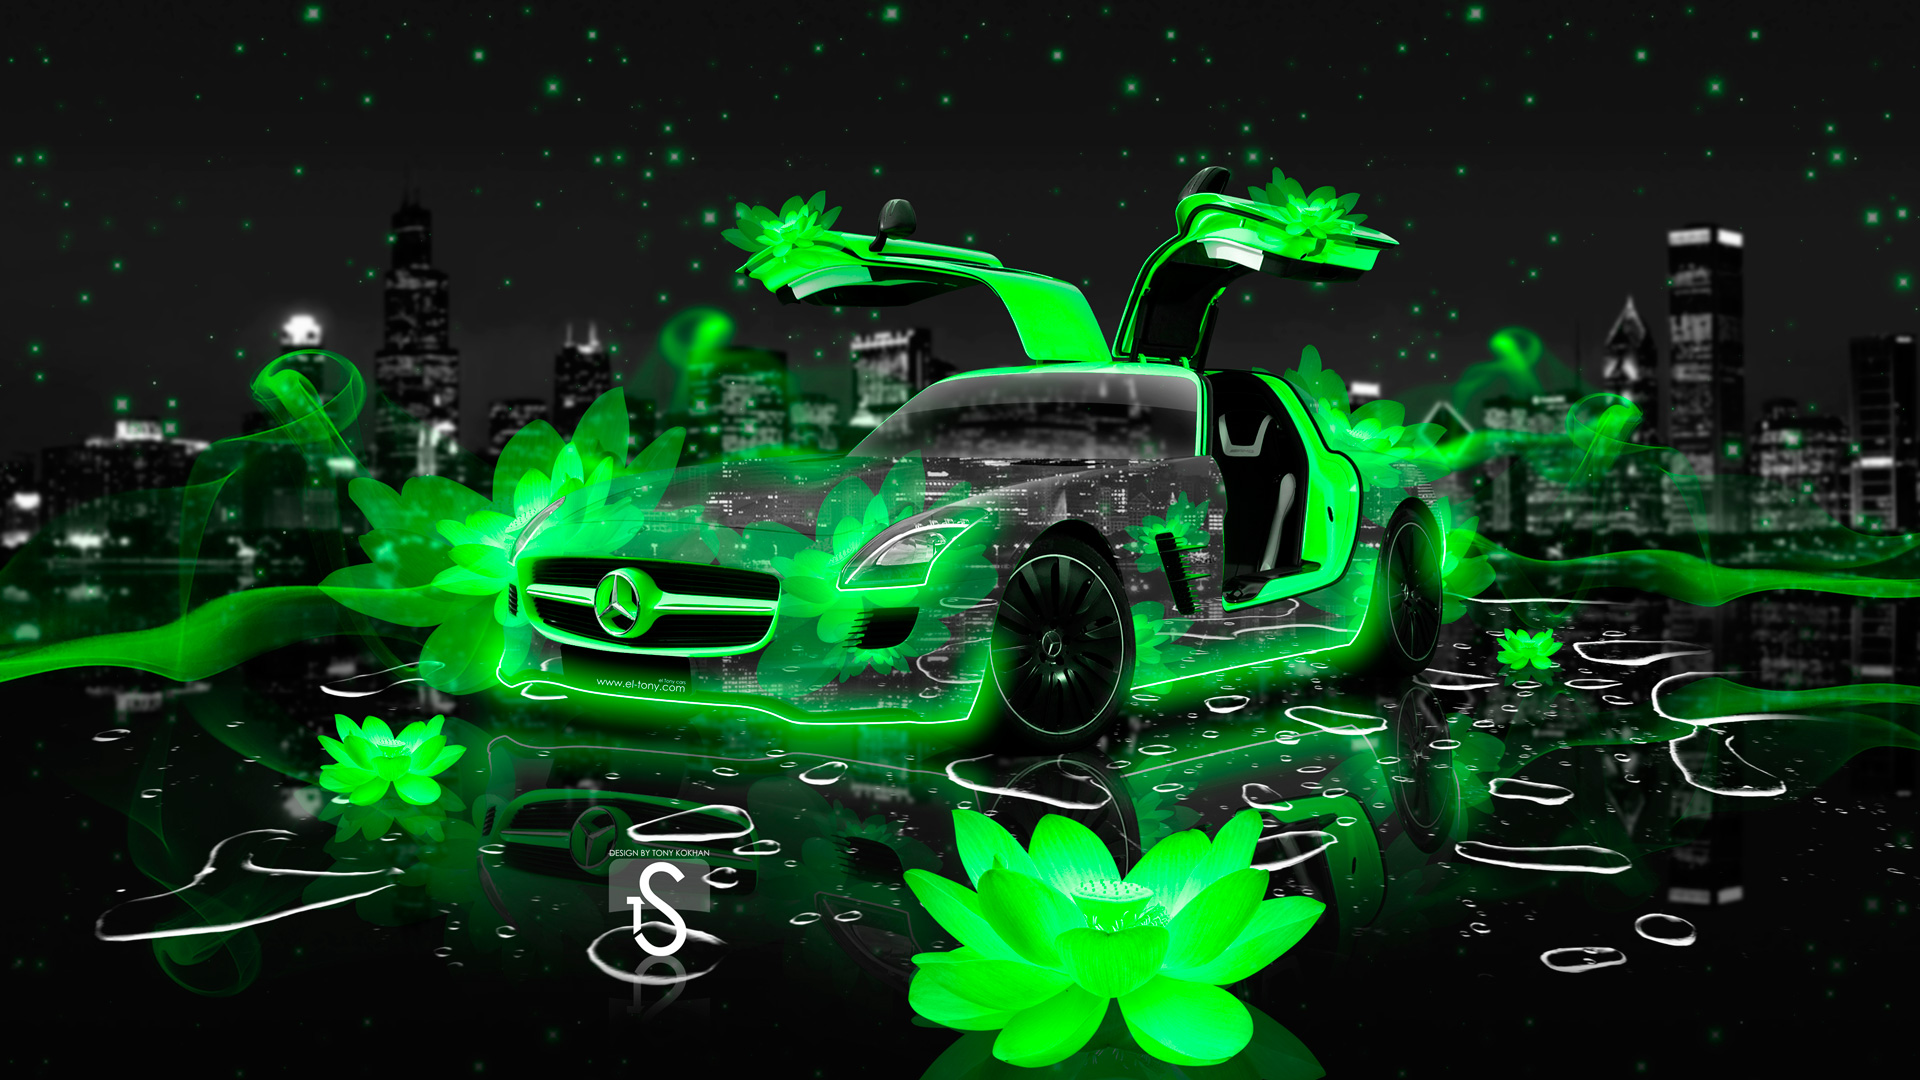 Beau Mercedes Benz F700 Fantasy Nixie Car 2014 · Mercedes SLS AMG Fantasy  Flowers City Car 2014